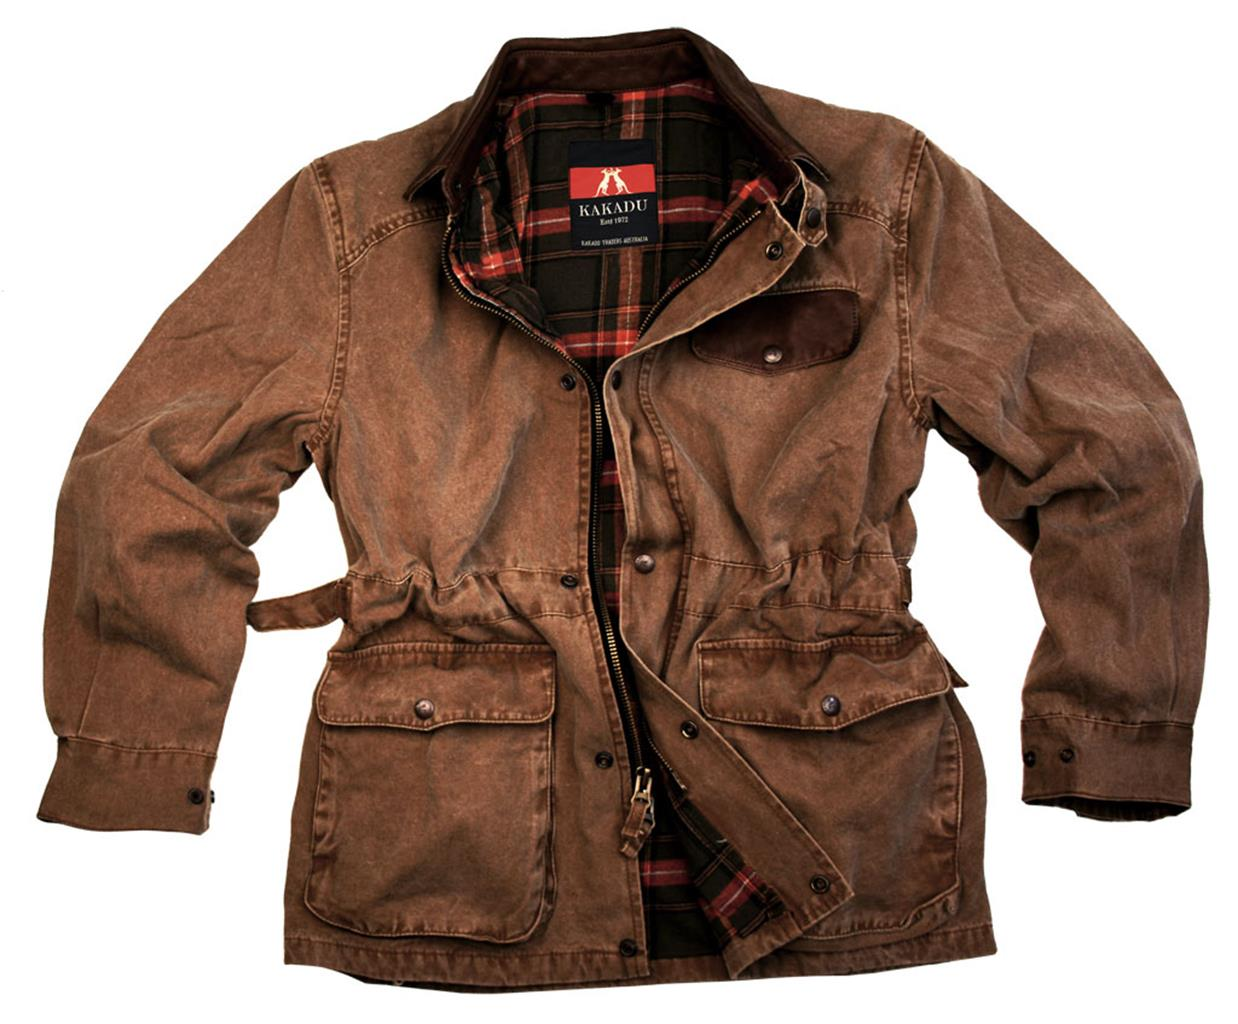 Pilbara Jacket in Tobacco